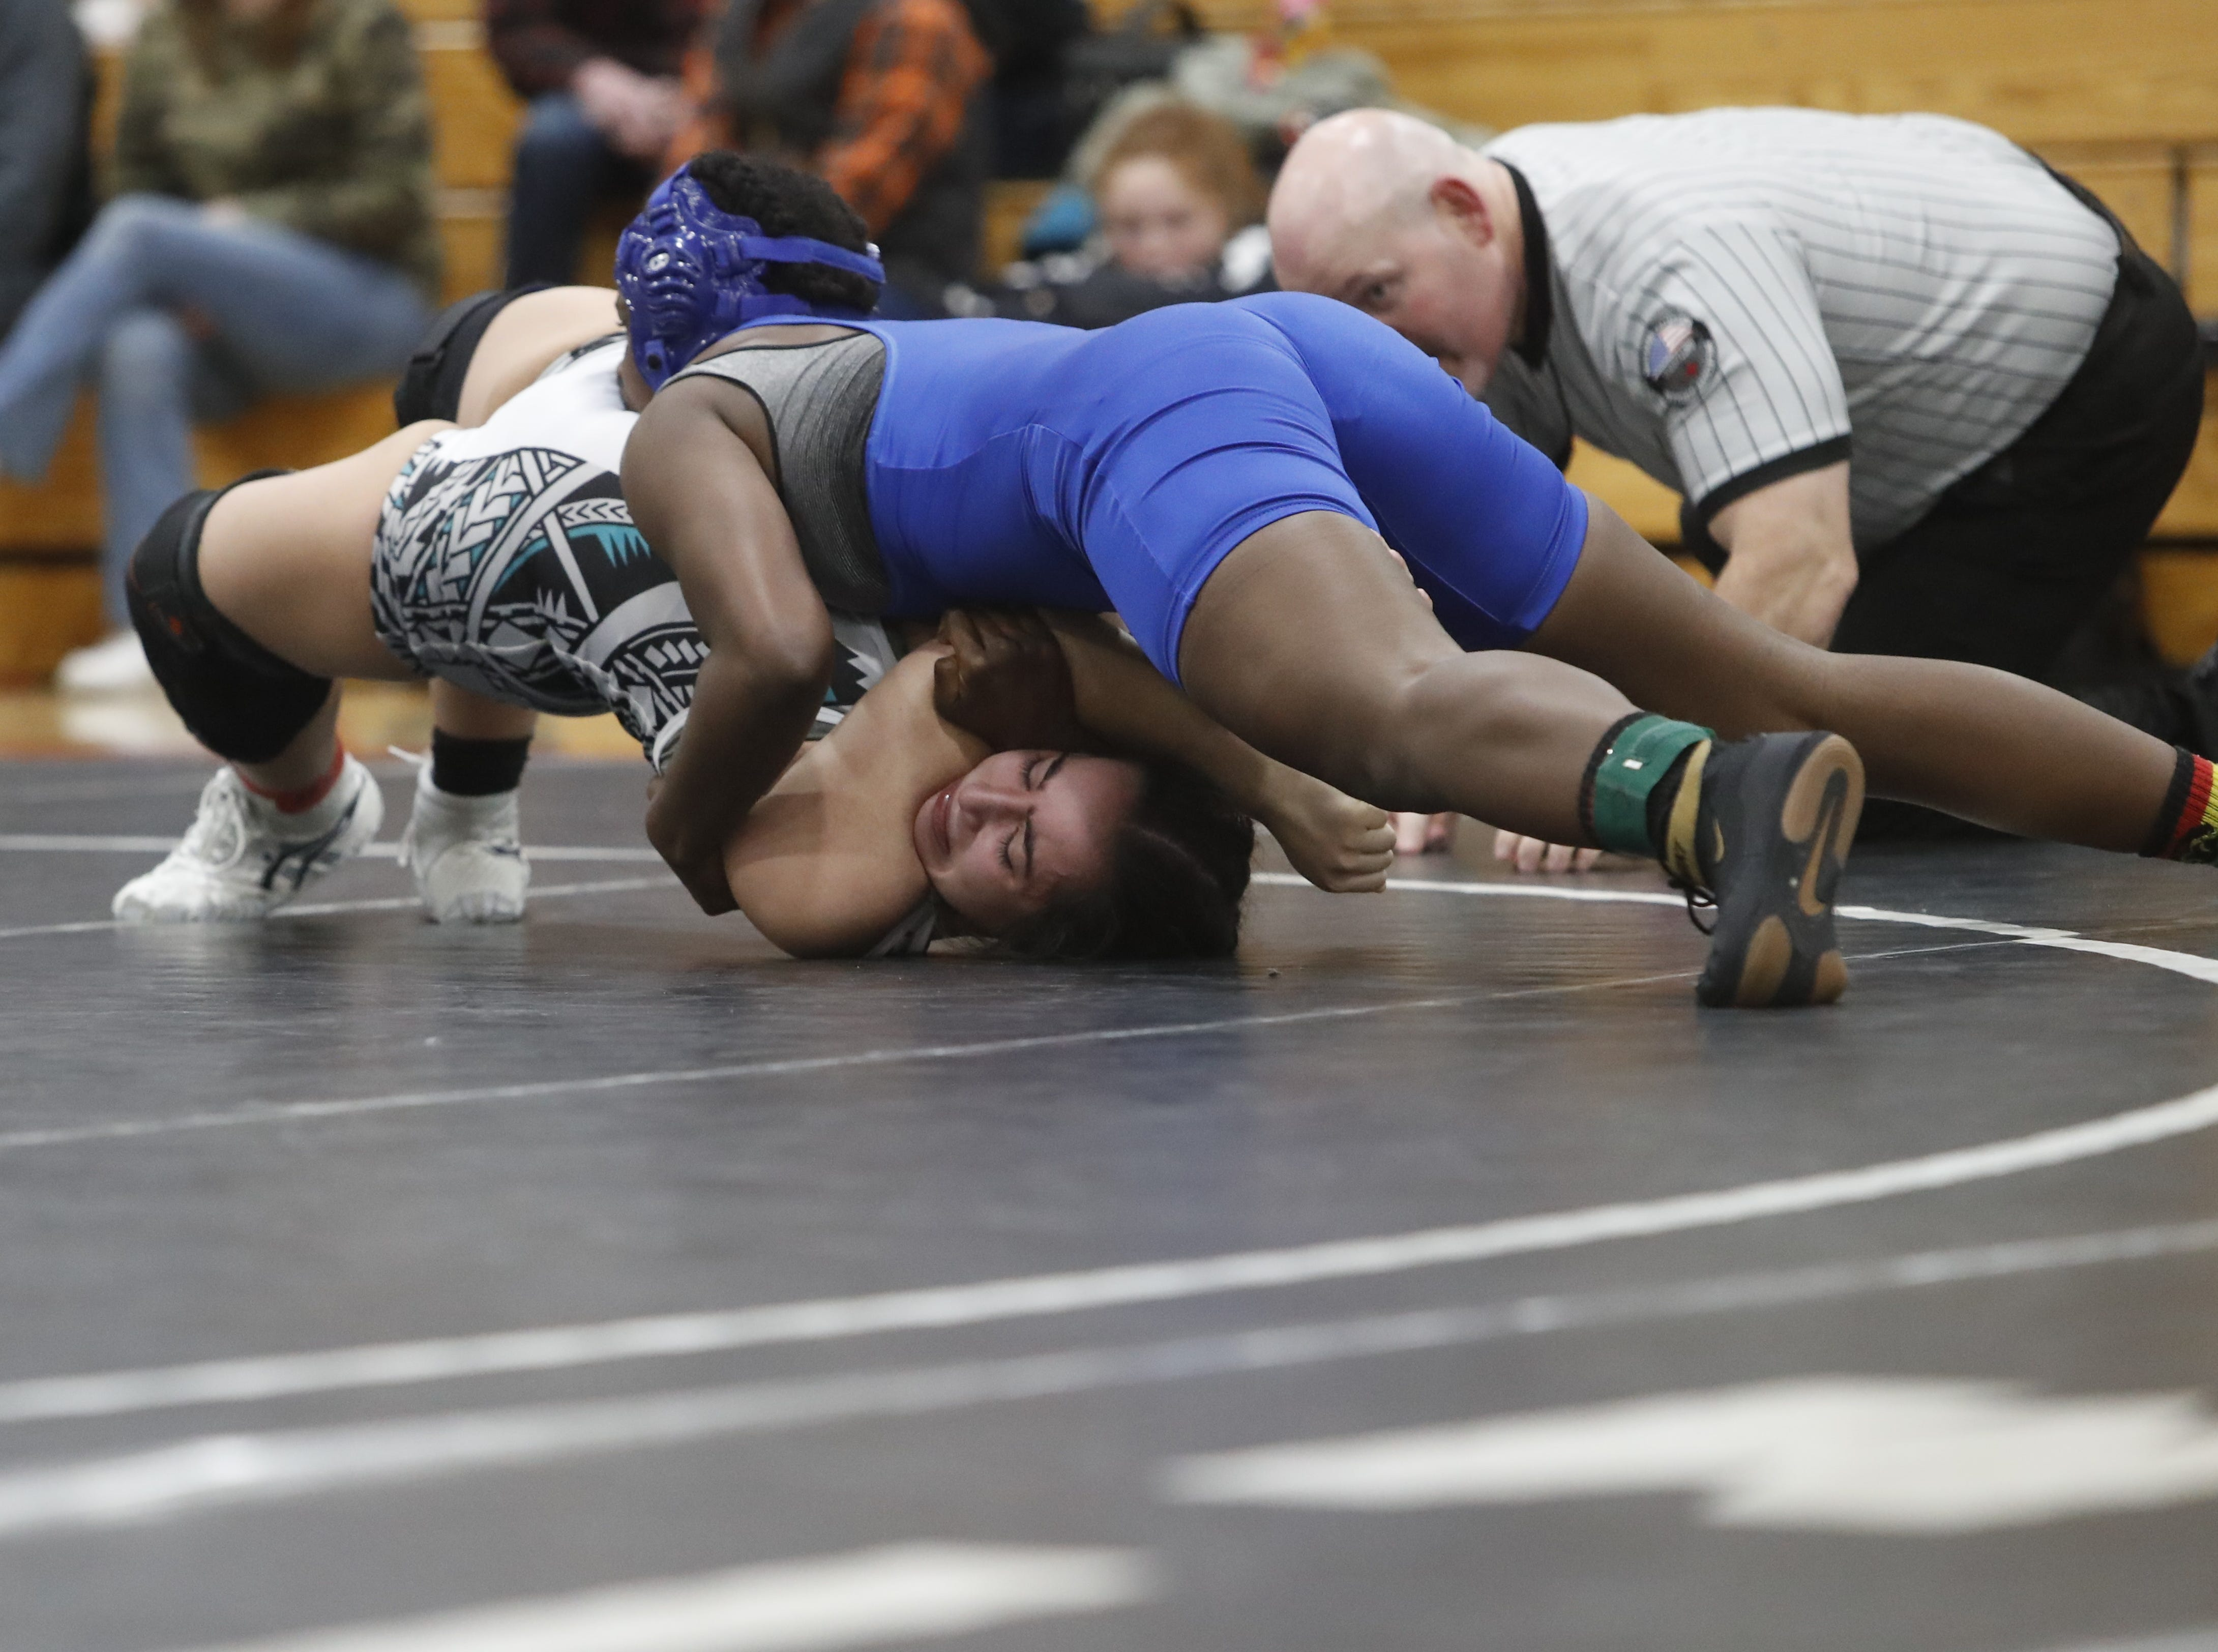 Oregon's Lillian Restrepo of Century (below) wrestles against California's Tia Barfield of Bishop Union at the ORCA Senior All-Star Duals at Simpson University on Saturday, March 9. Barfield won the match.